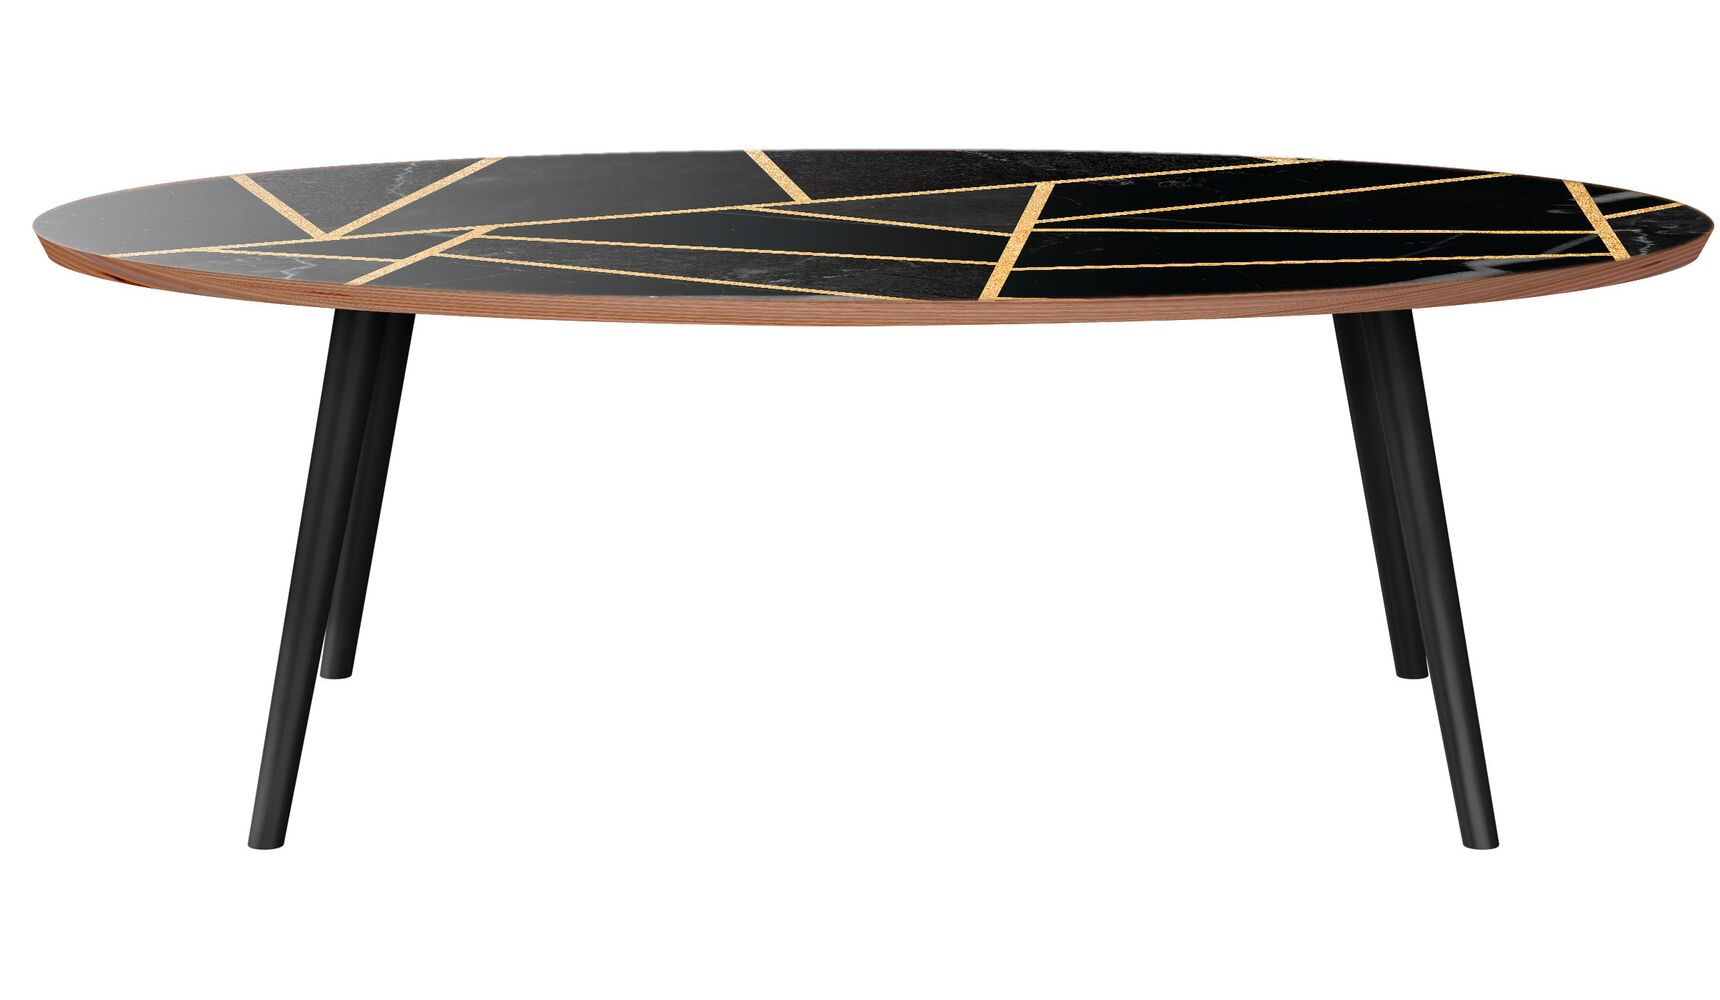 Mcginley Coffee Table Table Base Color: Black, Table Top Color: Walnut/Black